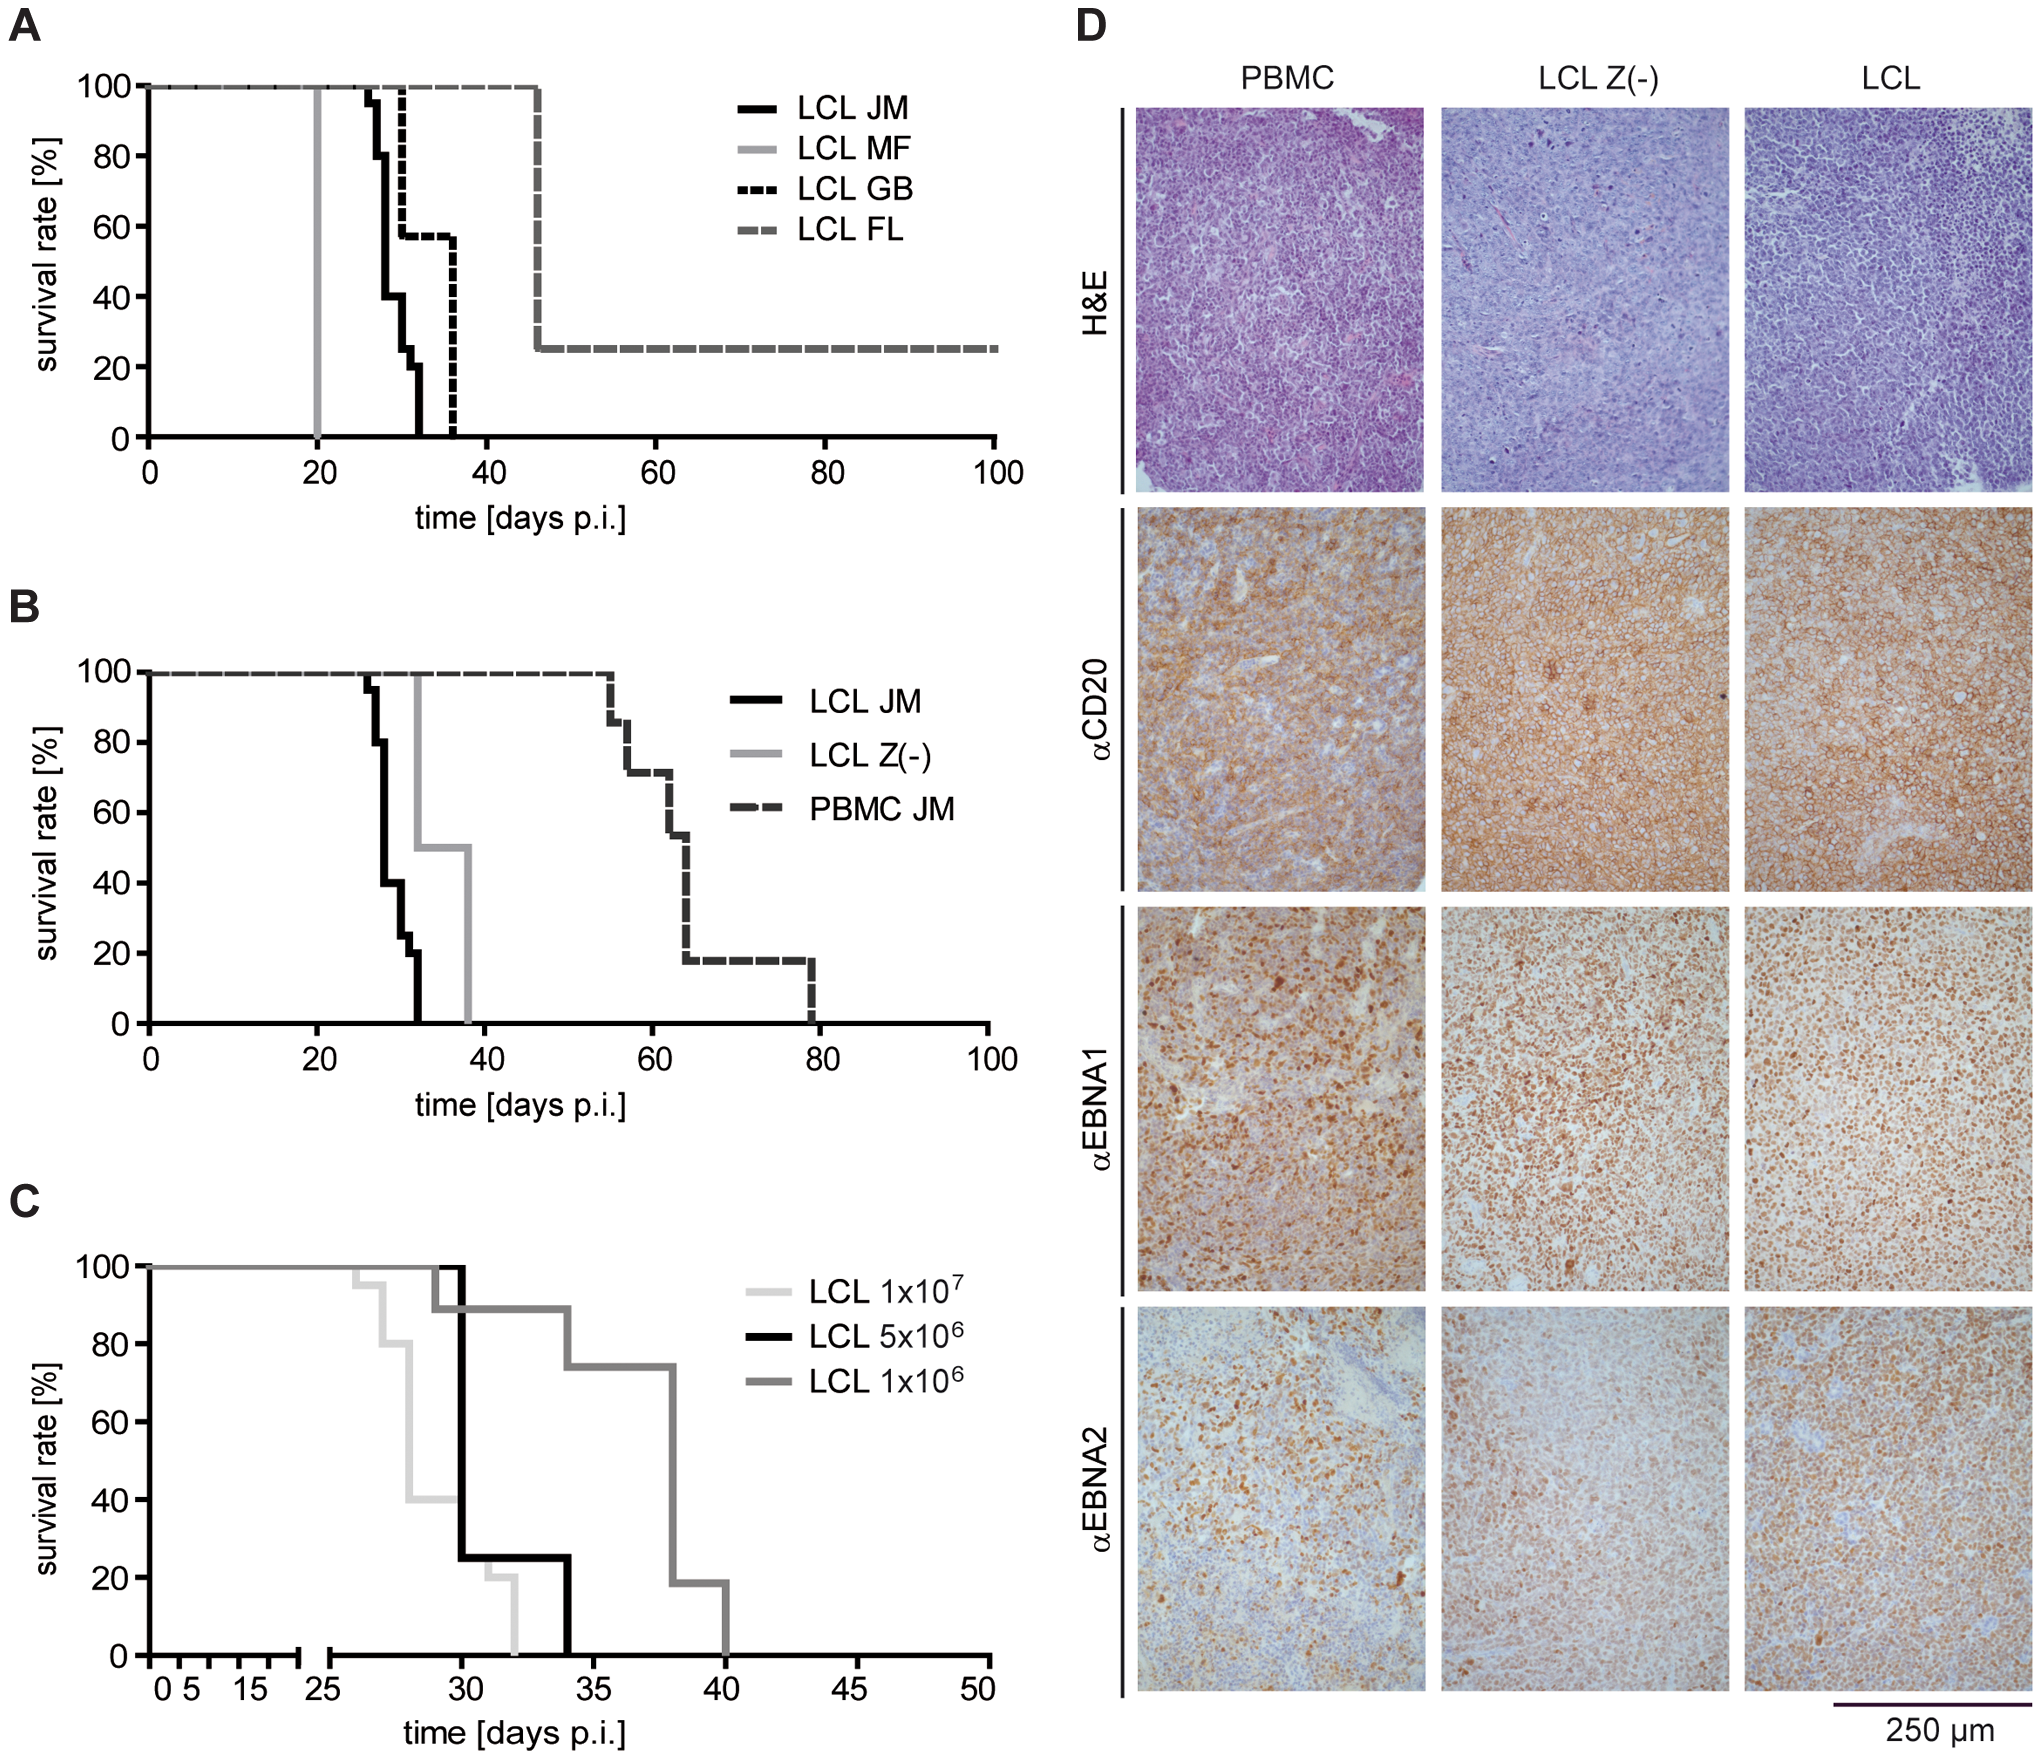 Induction of human PTLD-like tumors in immunodeficient mice.